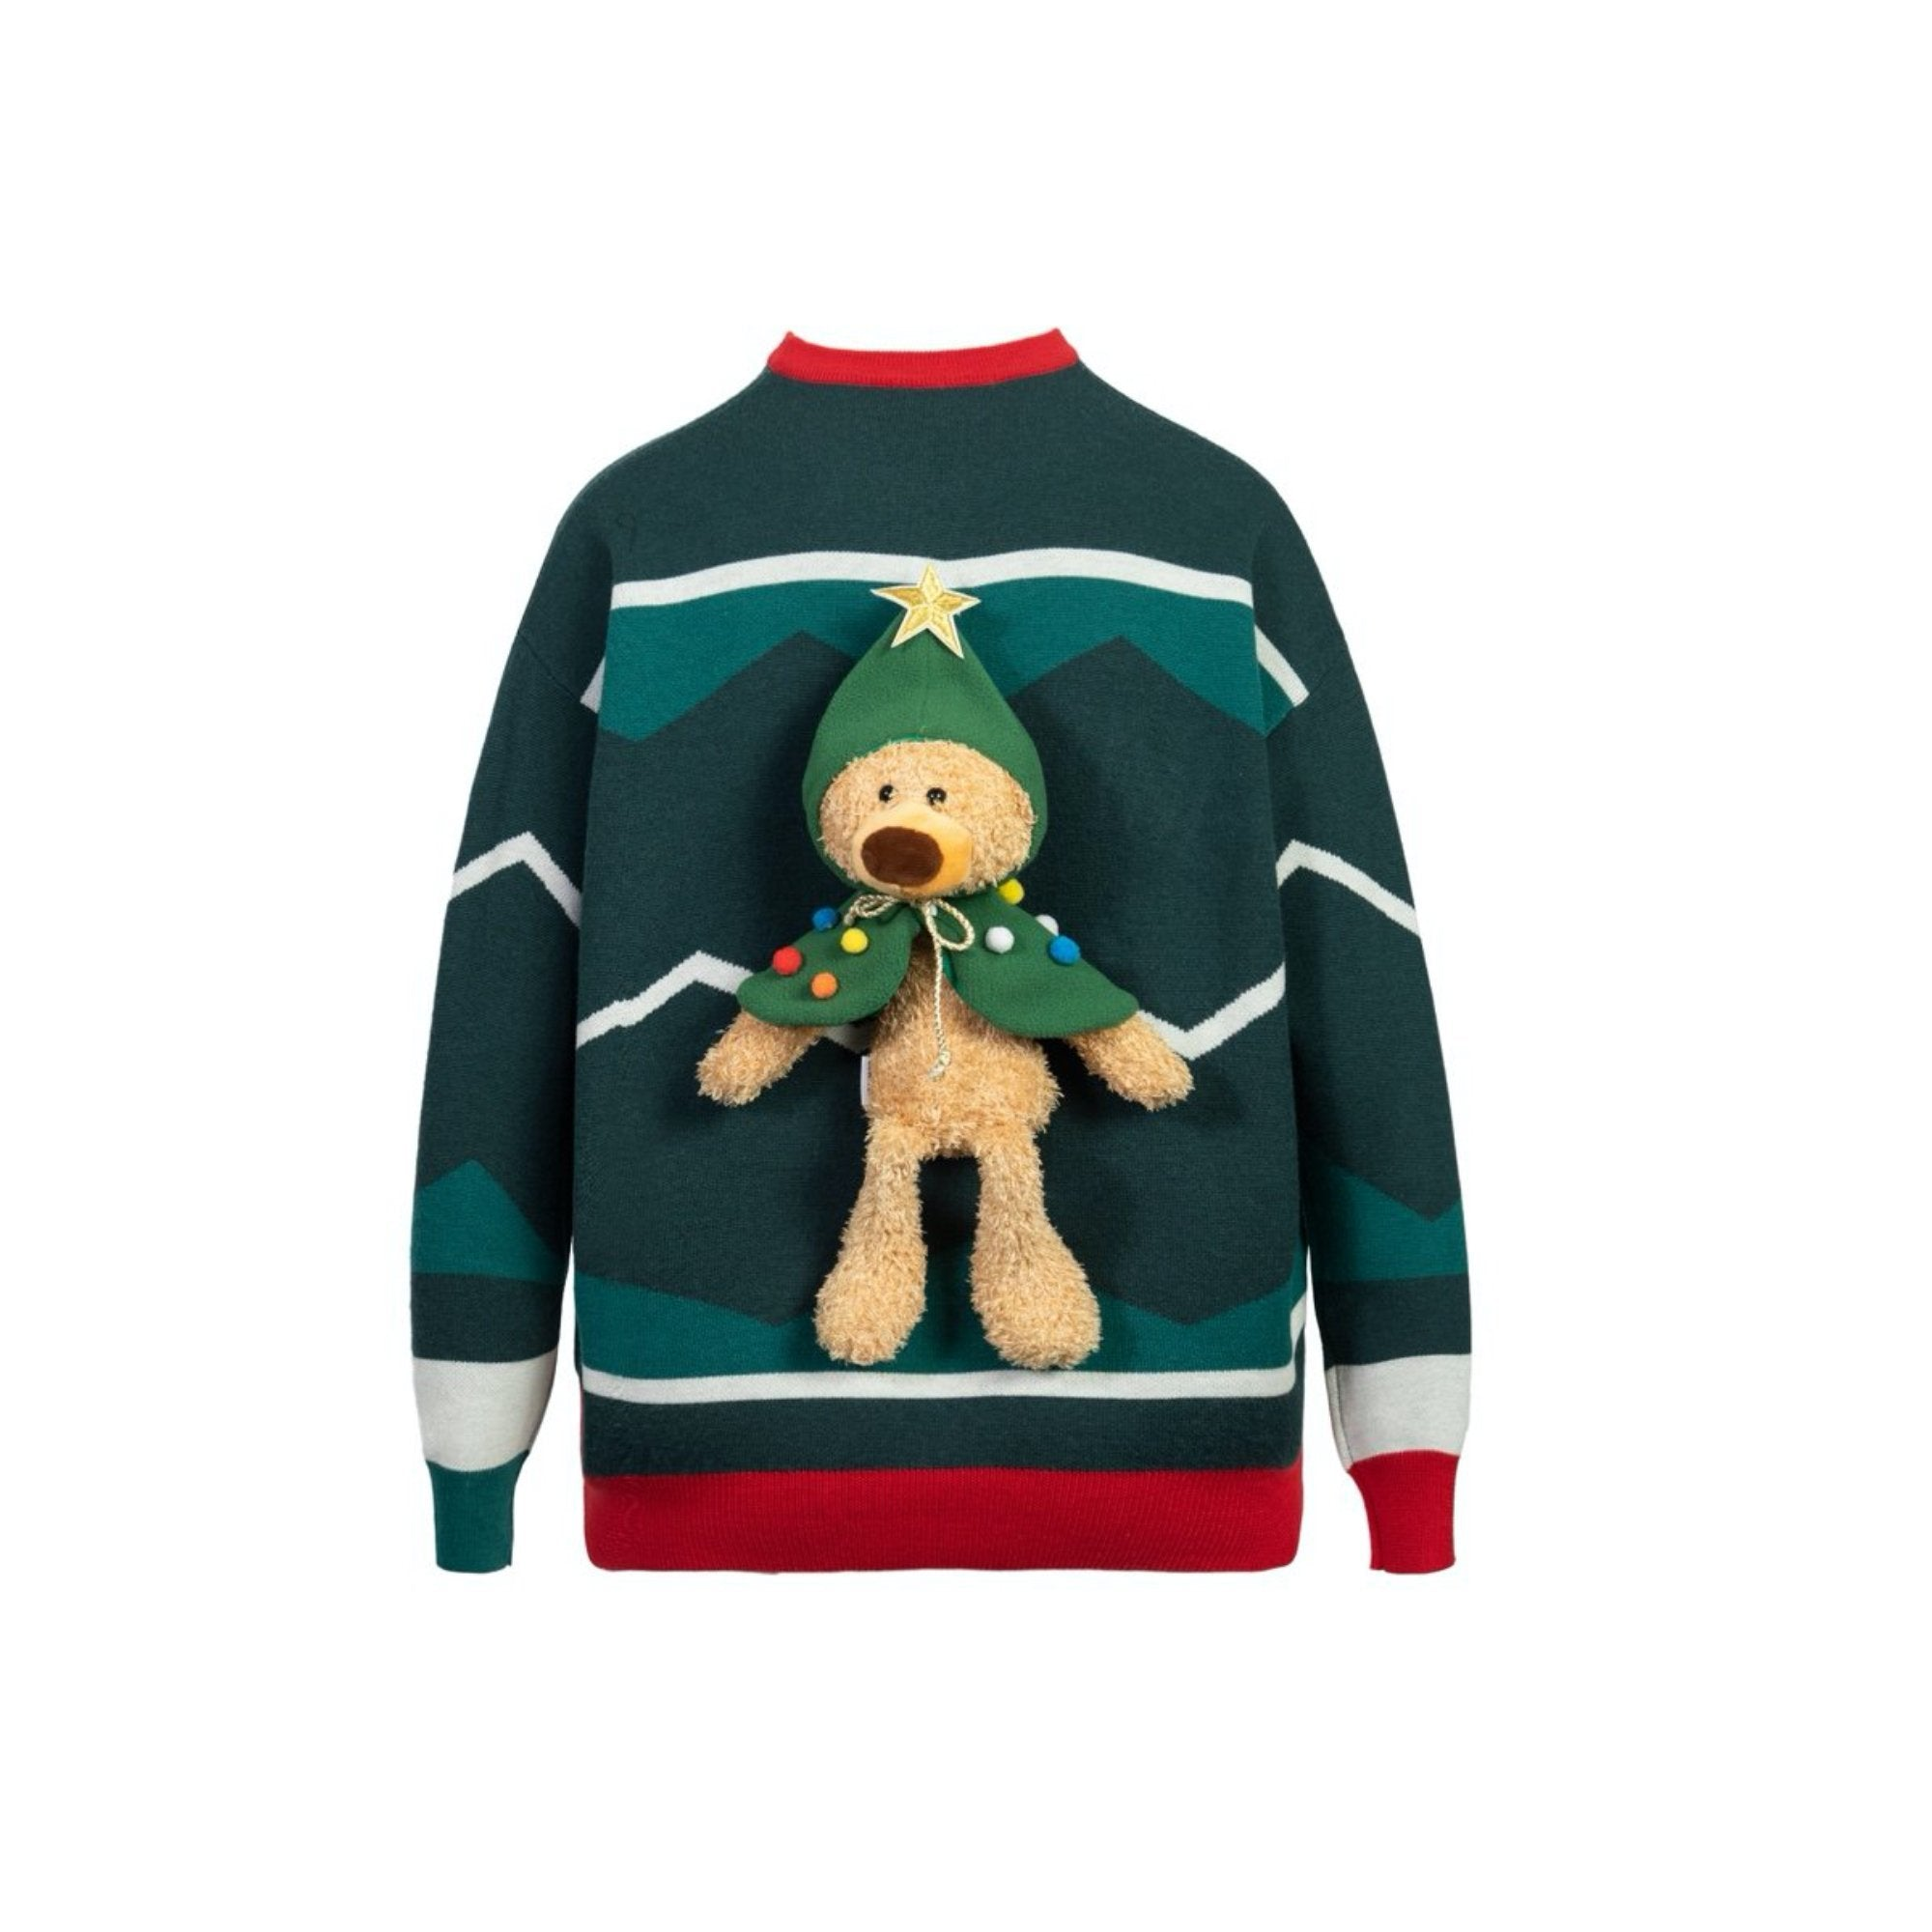 13 DE MARZO Teddy Bear Christmas Costume Sweater Christmas Tree | MADA IN CHINA